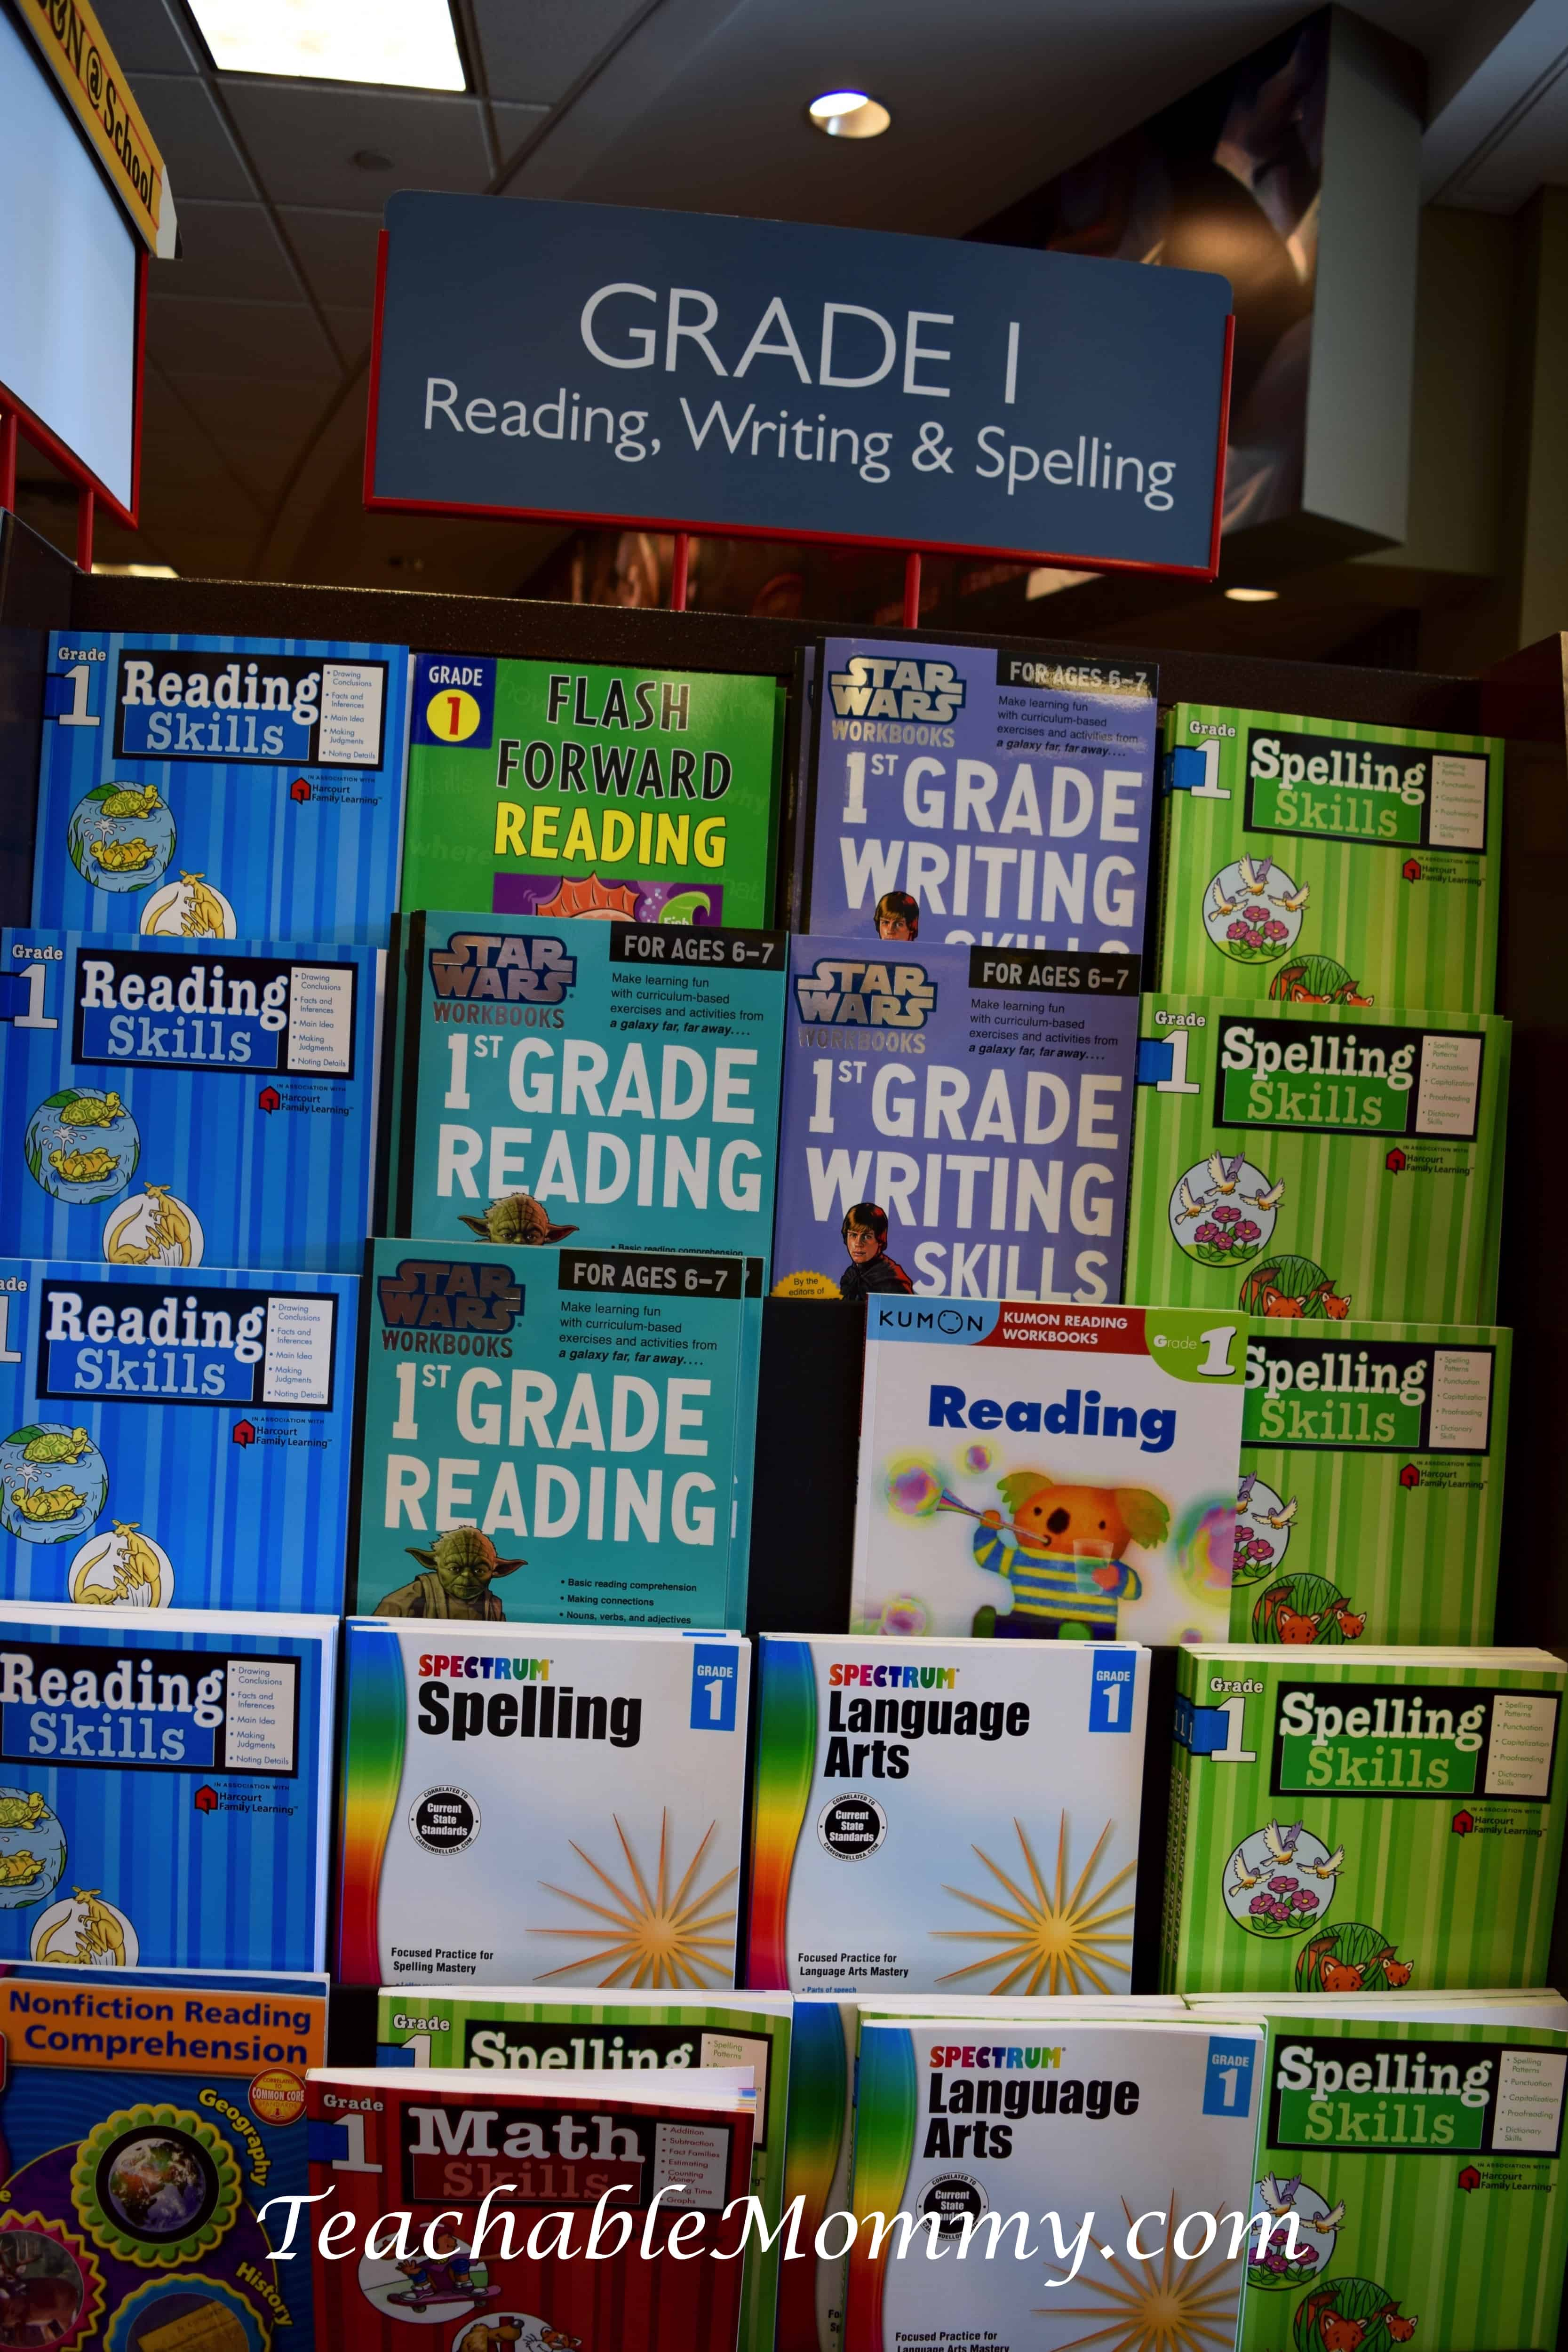 Shop Back to School and Save with Barnes and Noble Teachable Mommy